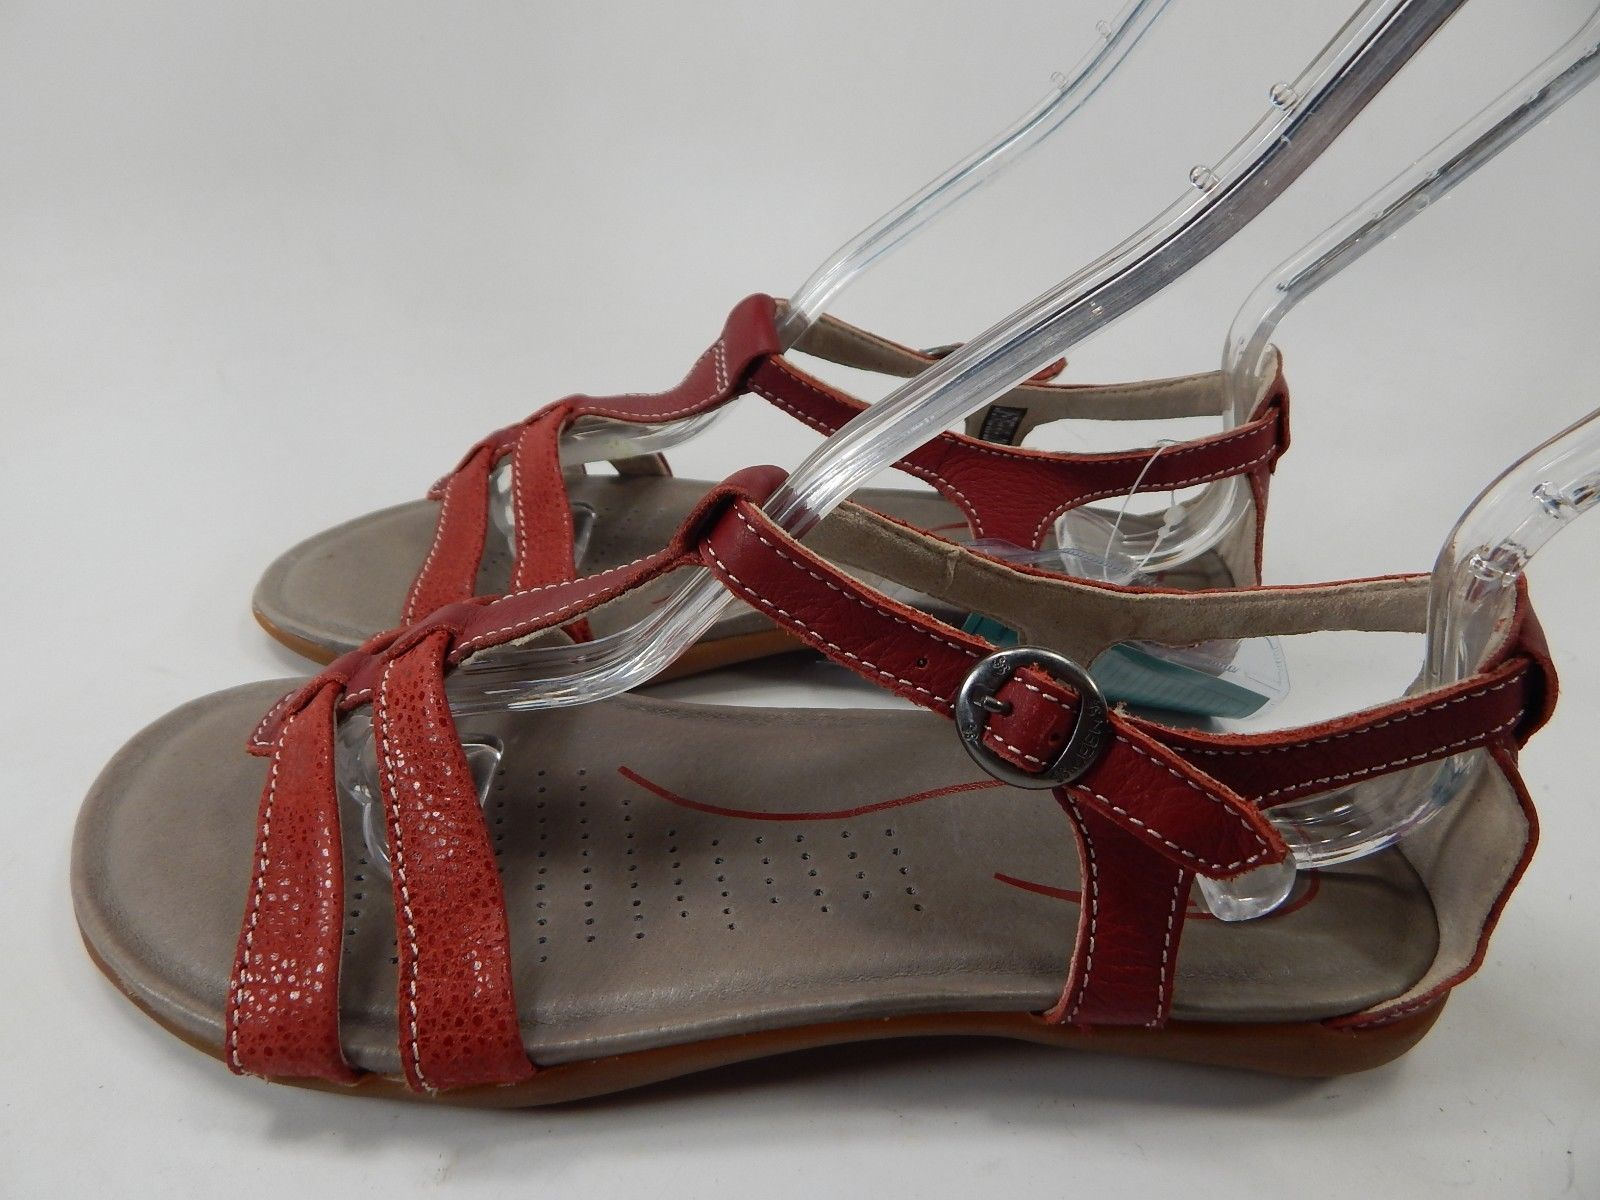 Keen Rose City T Strap Women's Sport Sandals Size 7 M EU 37.5 Red Dhalia